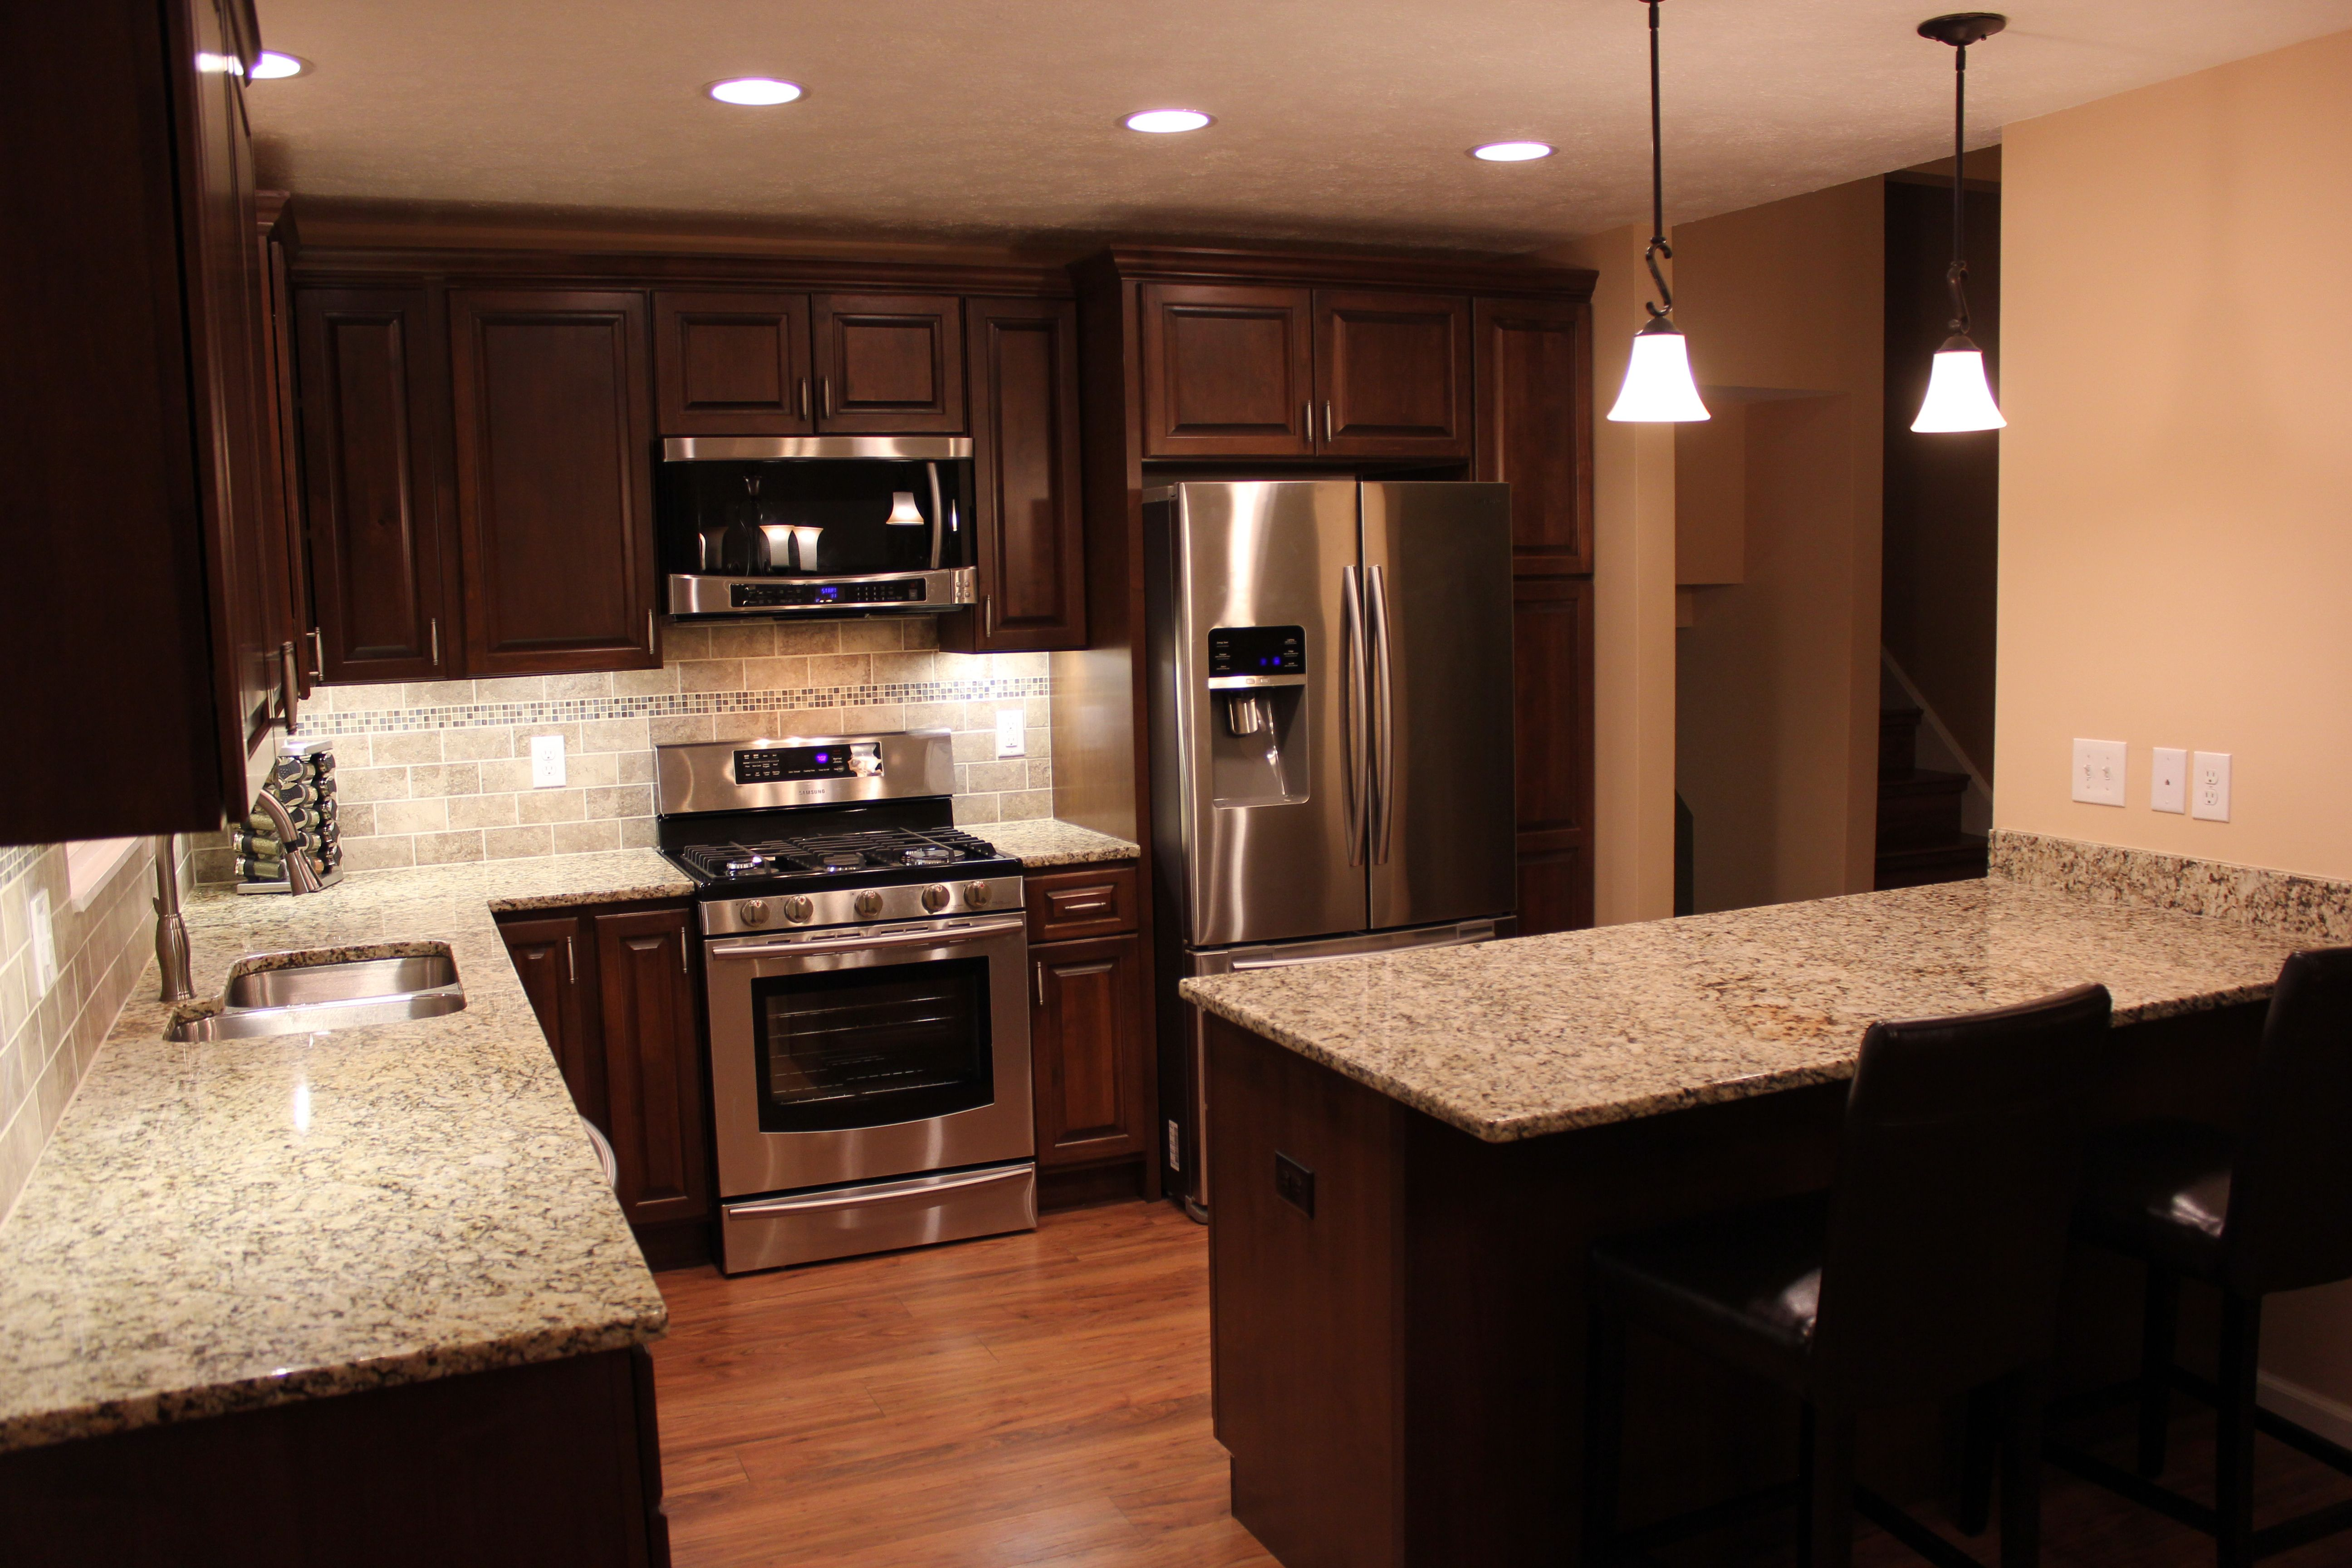 Cherry Cabinets, Granite Countertops, Tile Backsplash, Pendant Lights,  Recessed Lighting Kitchen Remodeling